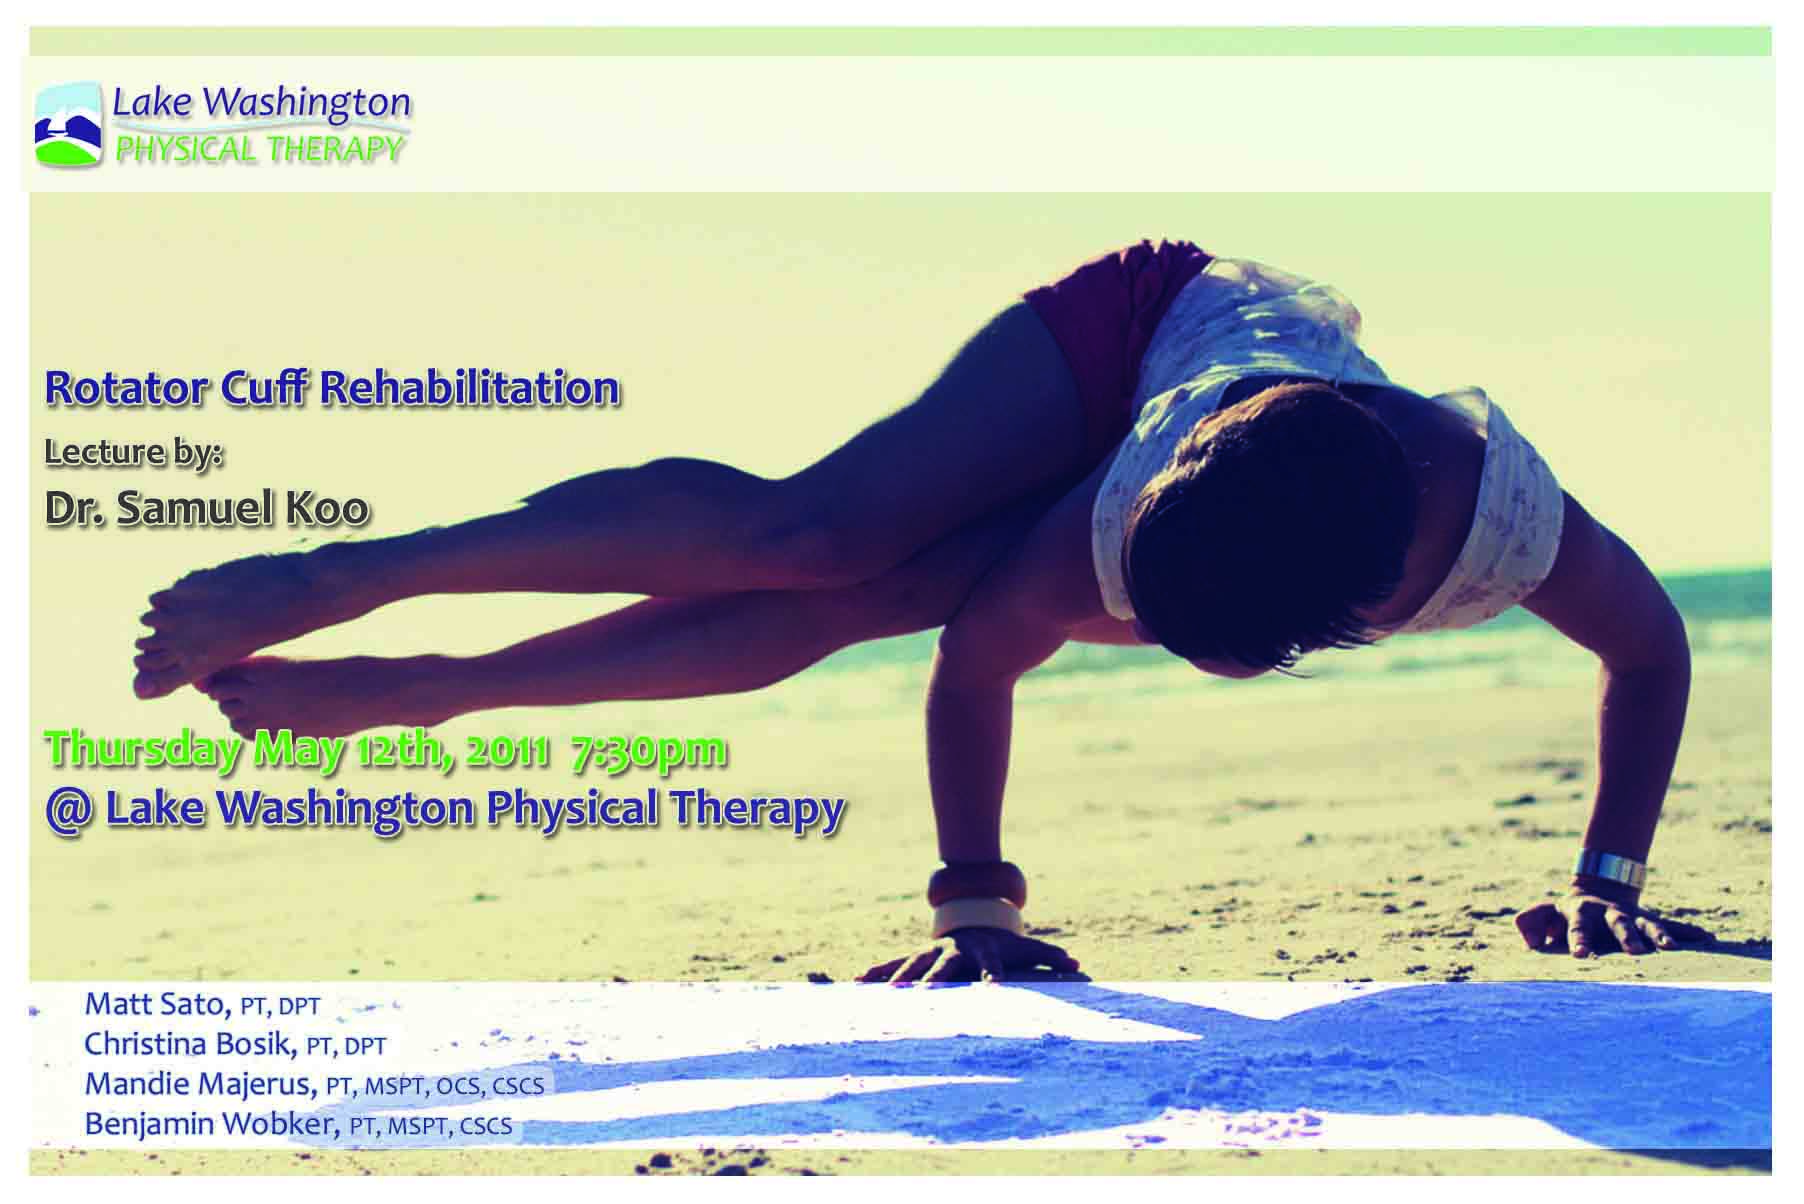 Dr. Samuel KooRotator Cuff Rehabilitation - More on Dr. Koo (Click here)